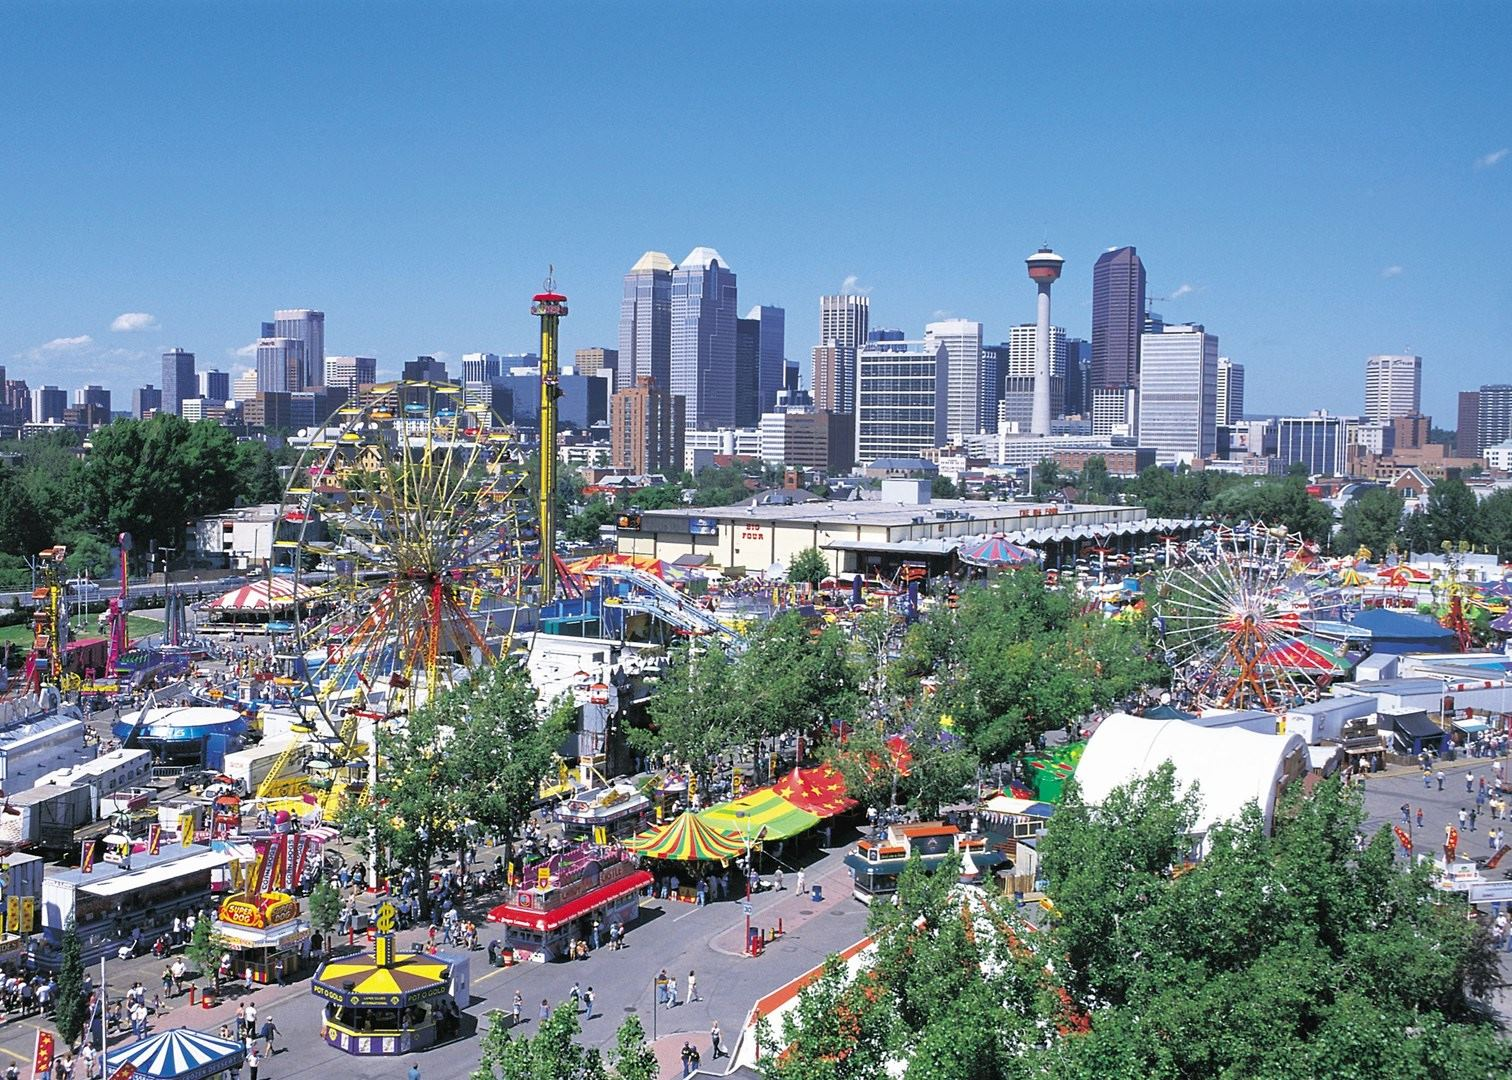 Calgary Stampede Rodeo Canada Audley Travel